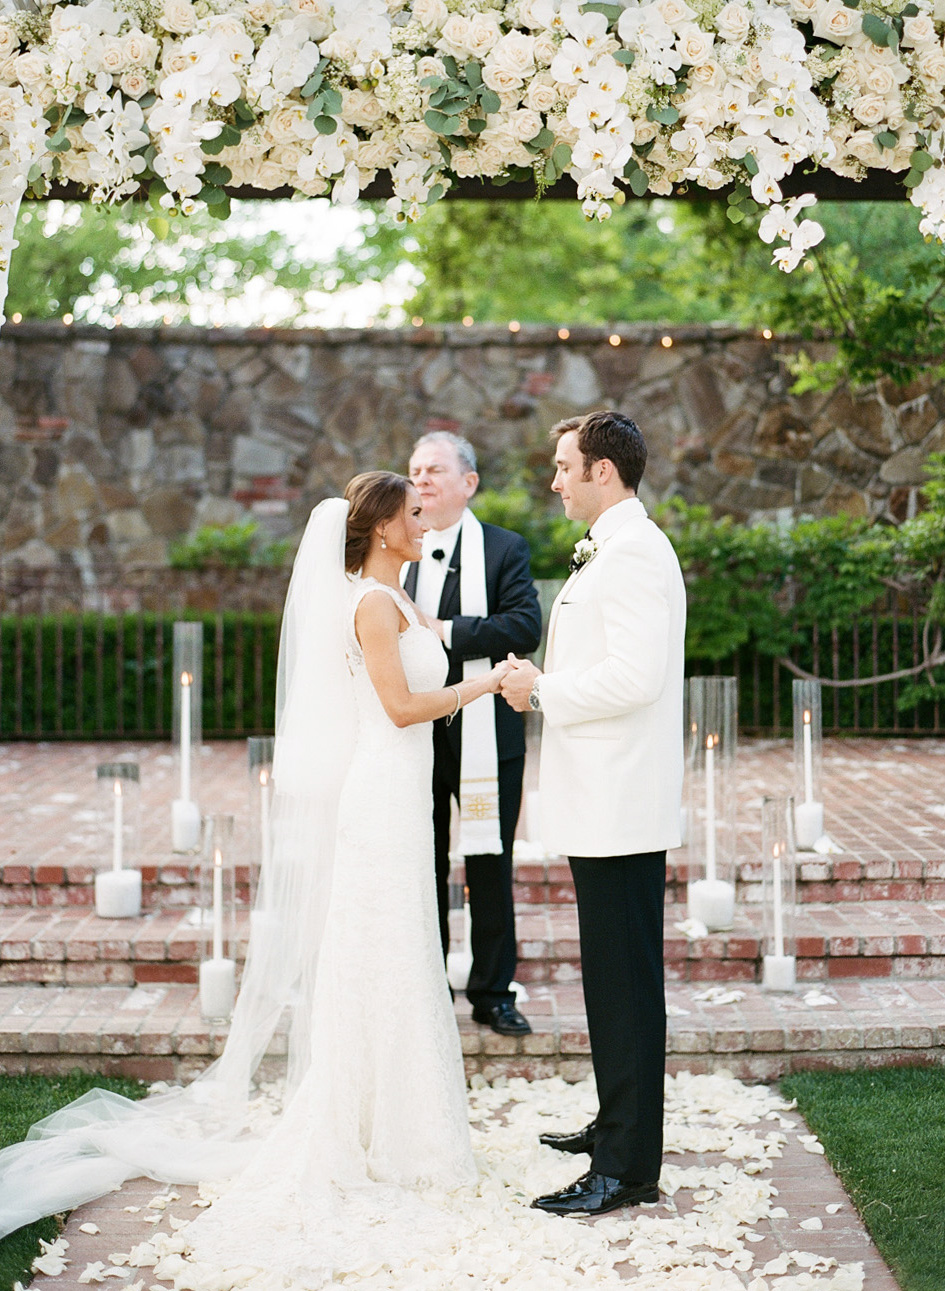 Bride and groom holding hands during wedding ceremony at Vintage Estates, Yountville; Sylvie Gil Photography